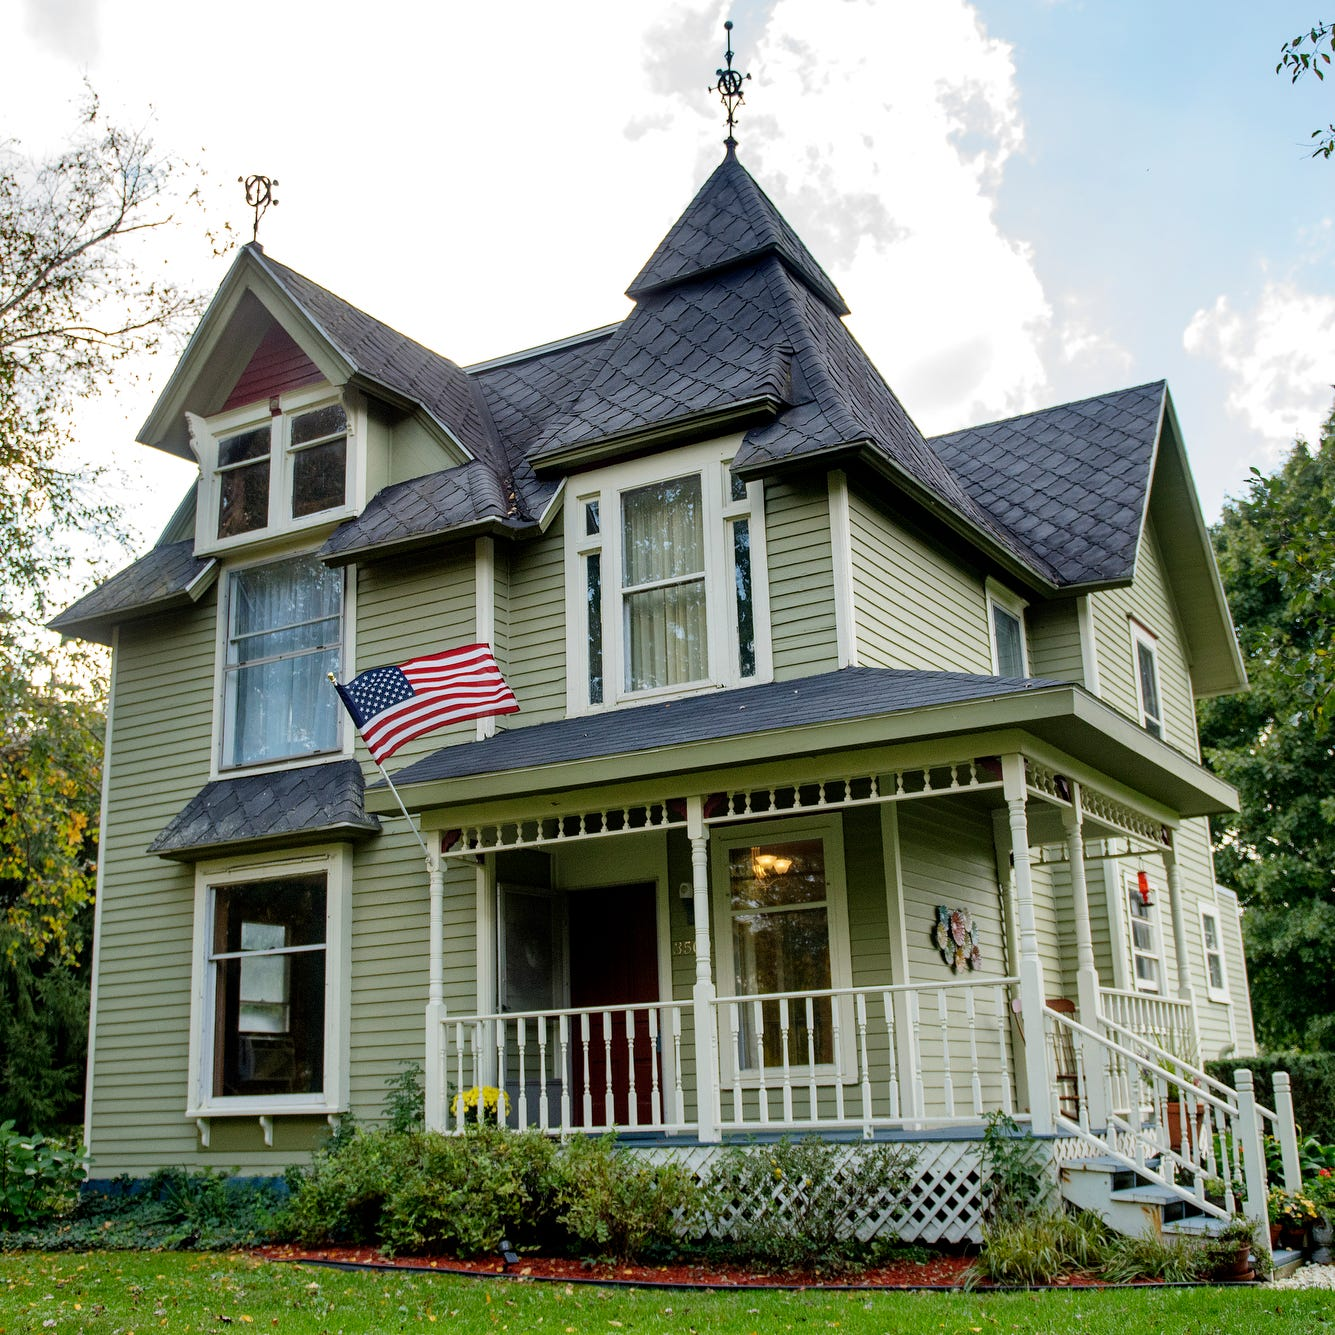 Cool spaces: Historic 125-year-old Okemos farmhouse on the market